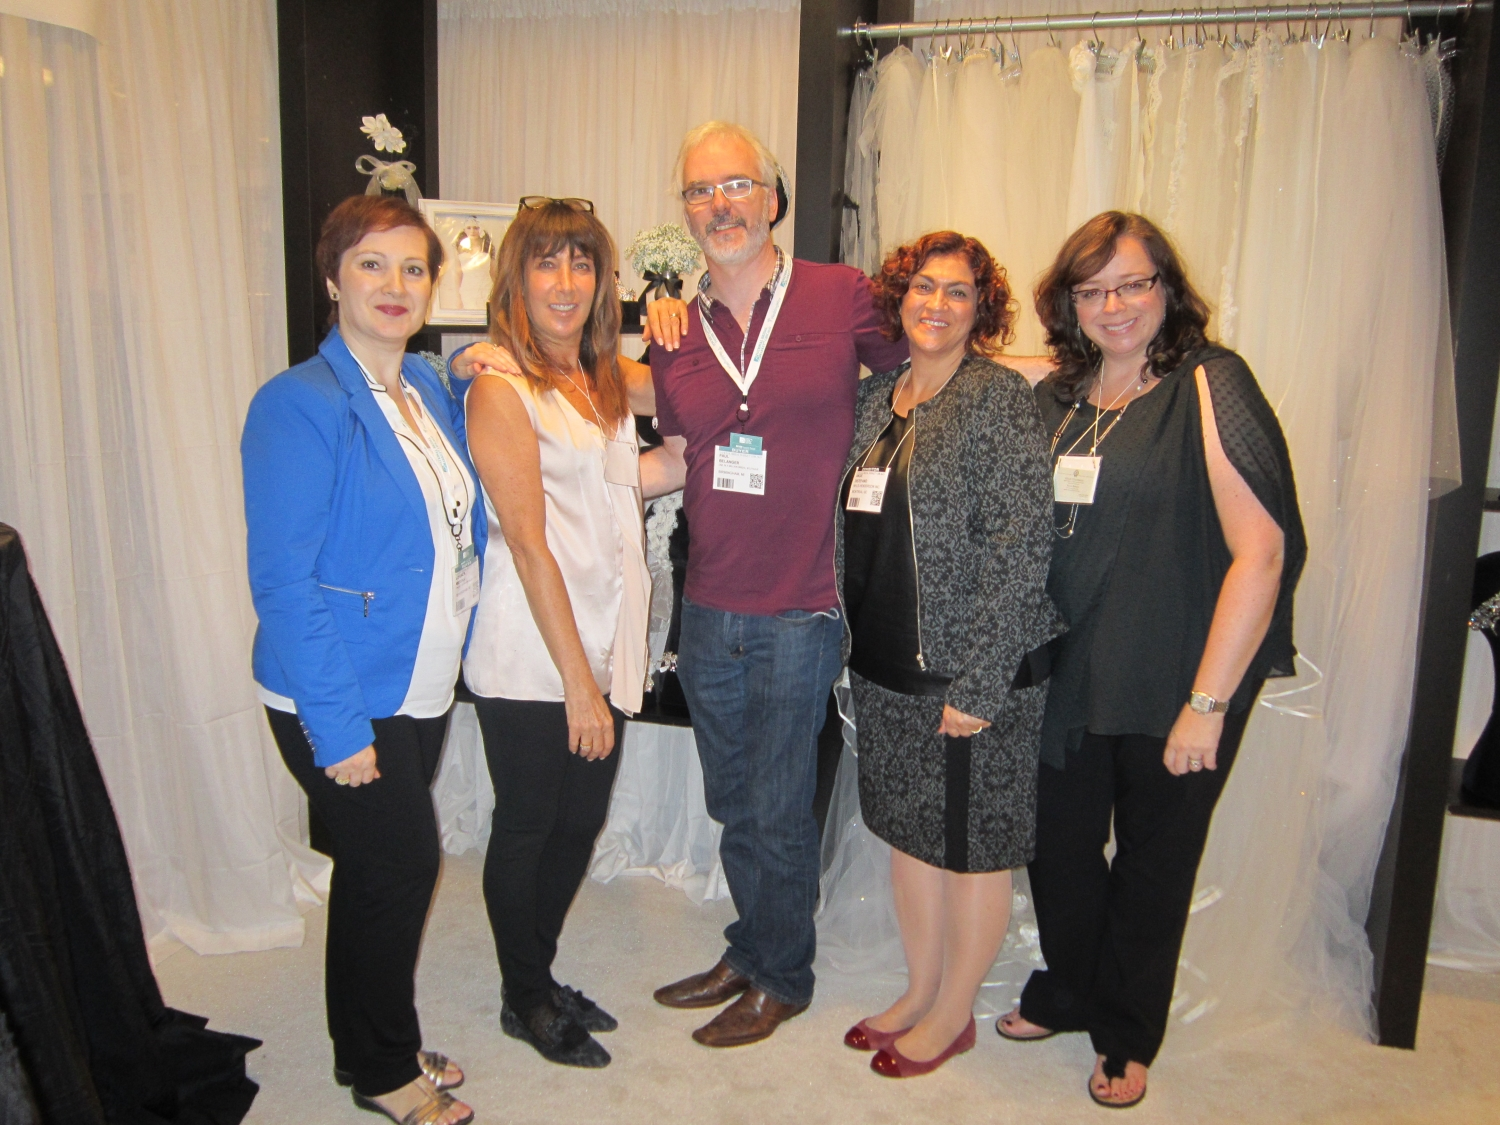 Lorenza (L) and Paul from One In A Million in Birmingham, MI with Elen, Angie, and Nicole from Malis-Henderson